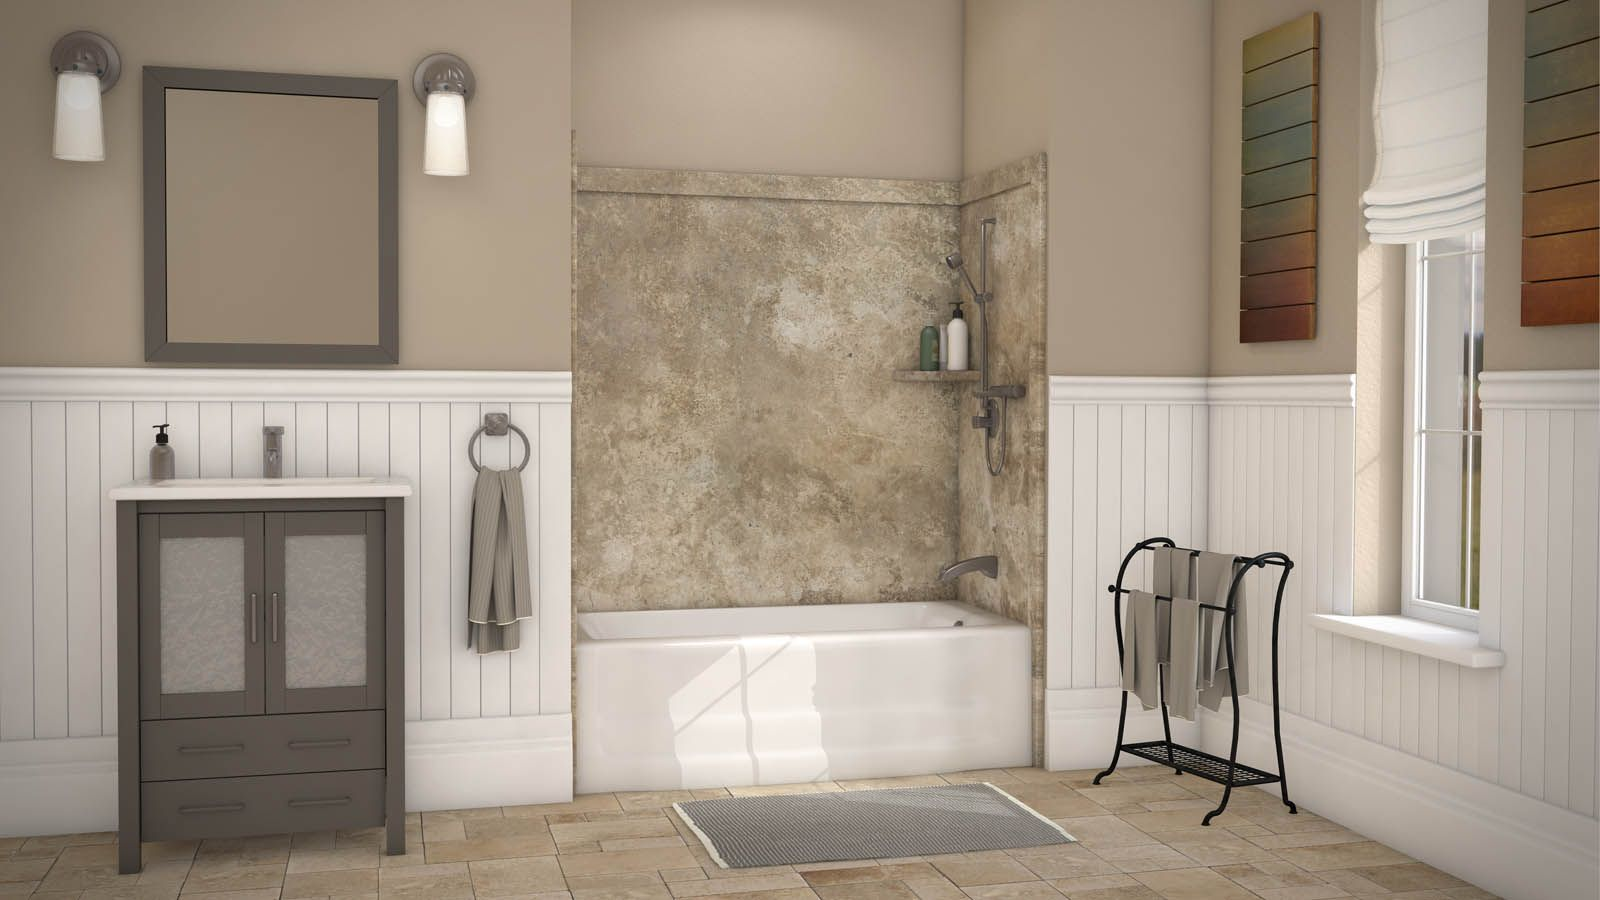 Give Your Bathroom A Face Lift With The Look Of Natural Stone This Is One Of Our Tub Surrounds In The Color Mocha Traverti Bath Surround Bath Kit Stone Bath